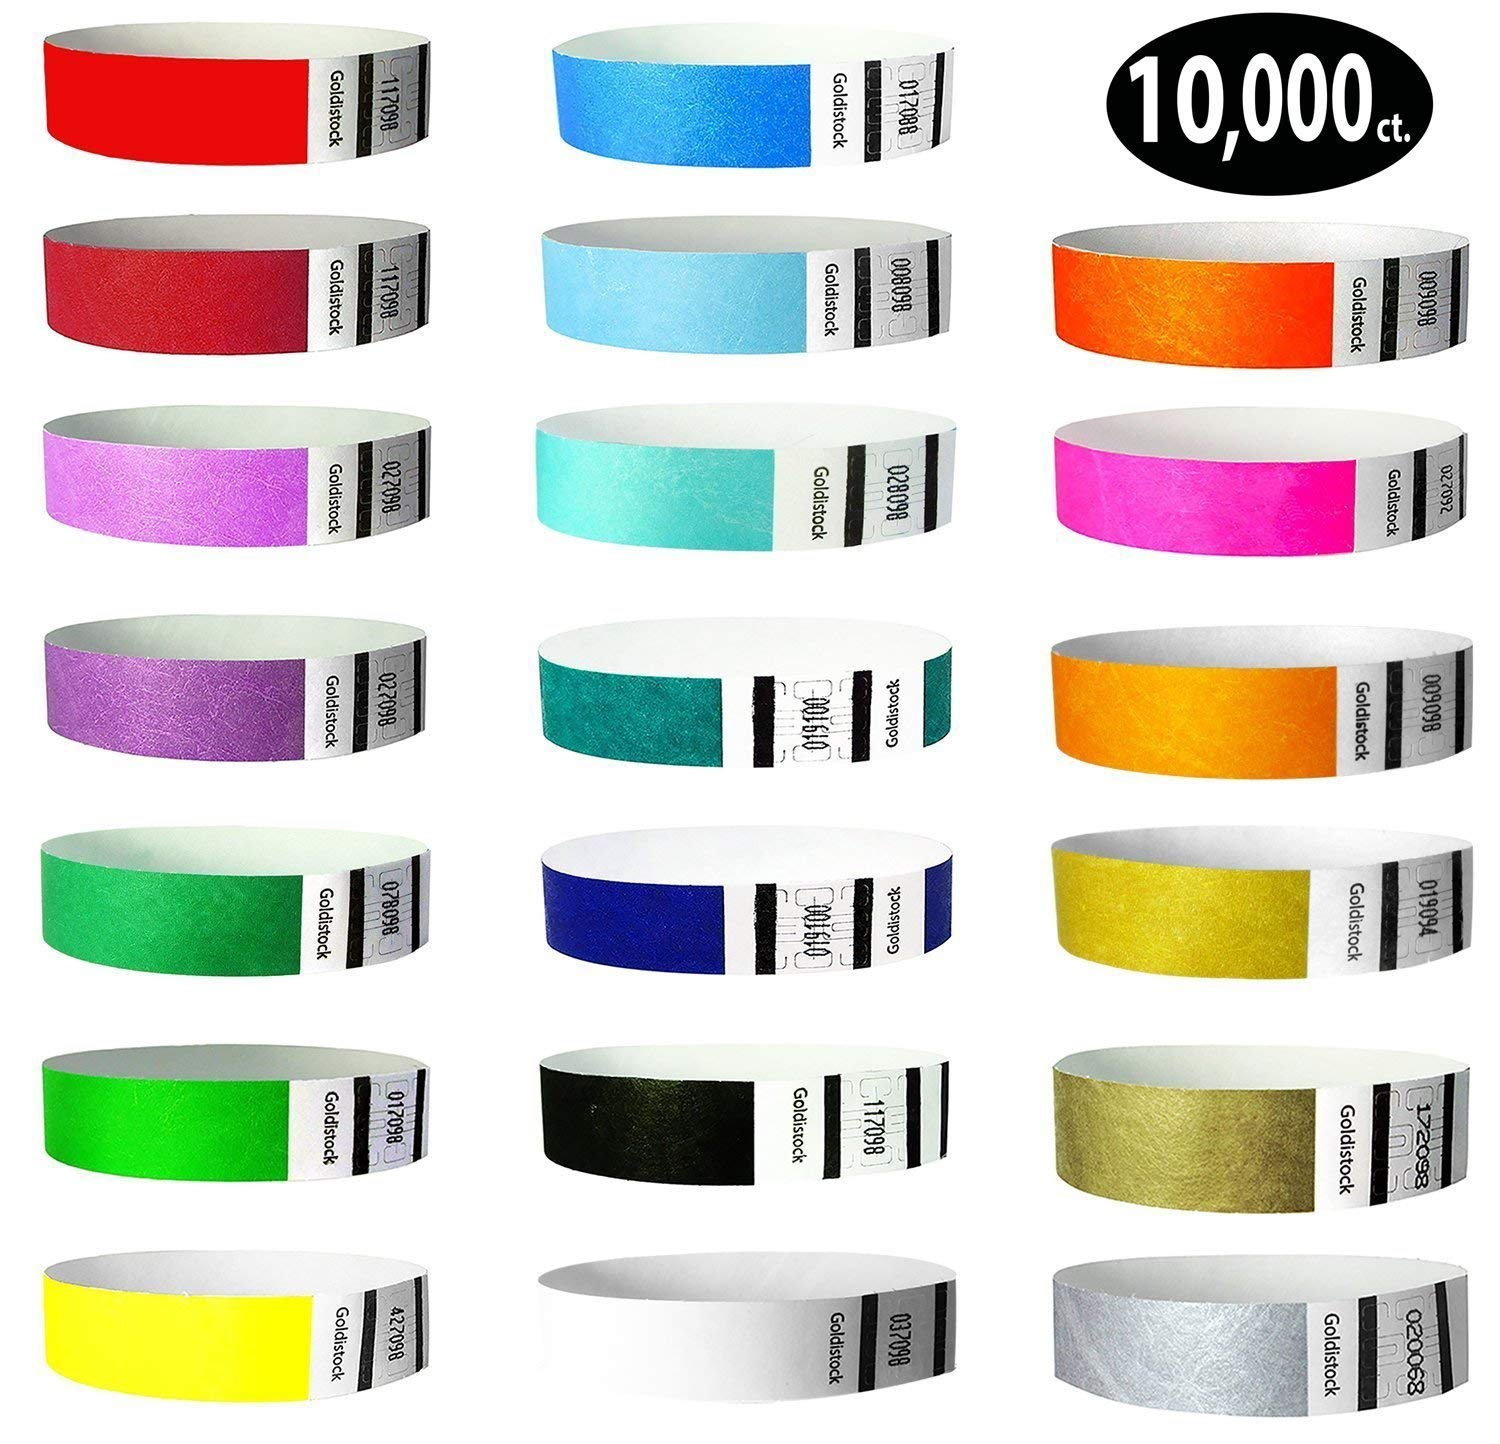 "Goldistock 3/4"" Tyvek Wristbands Top Twenty Variety Pack 20 Colors 10,000 Ct.- Green (2 Shades), Blue(3 Shades), Red(2), Orange(2), Purple(2), Gold(2), Yellow, Pink, Silver, Aqua, White, Black, Teal"